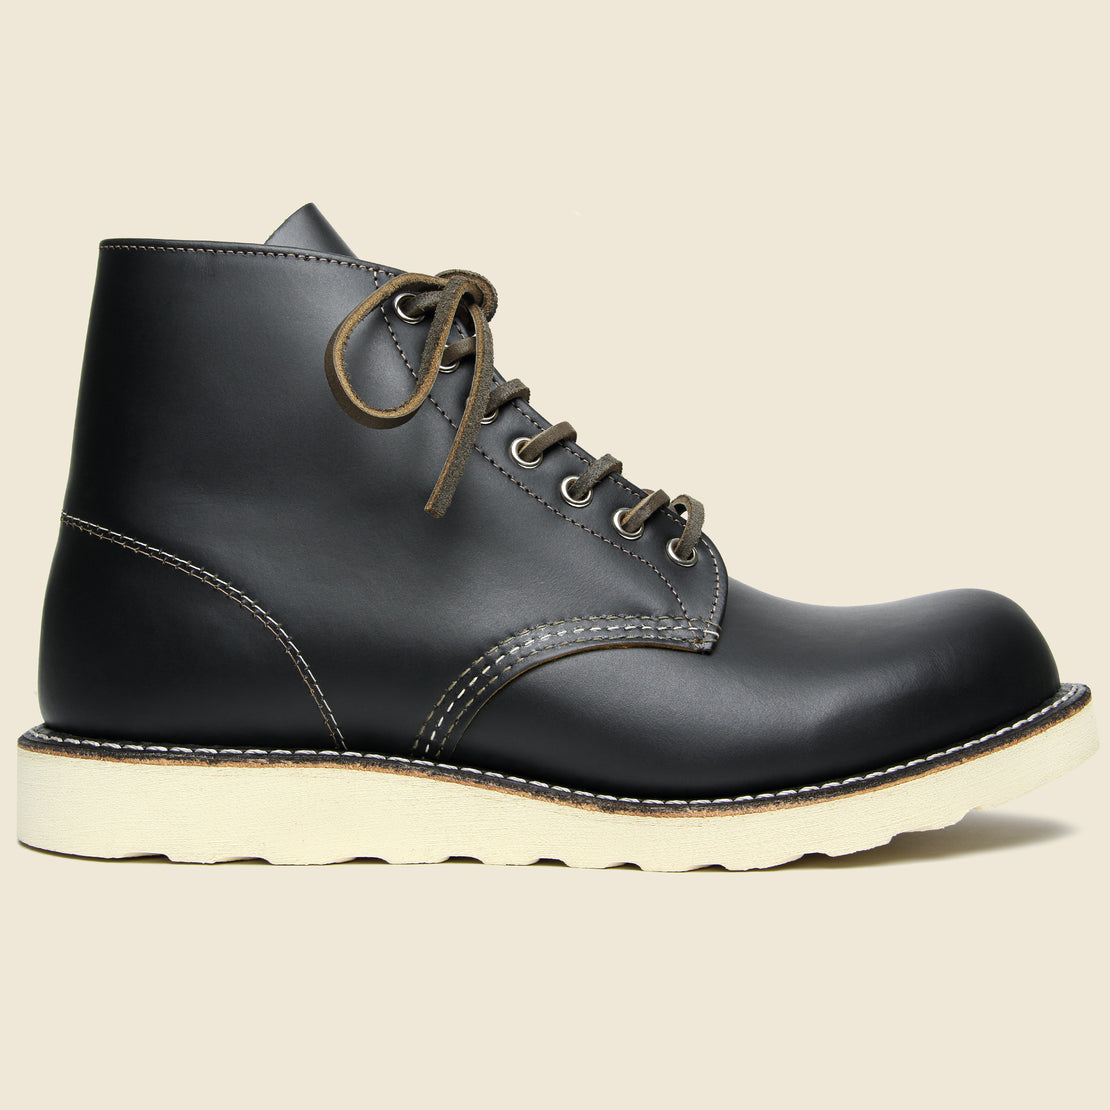 "Red Wing 6"" STAG Exclusive Round Toe No. 9870 - Black Klondike"